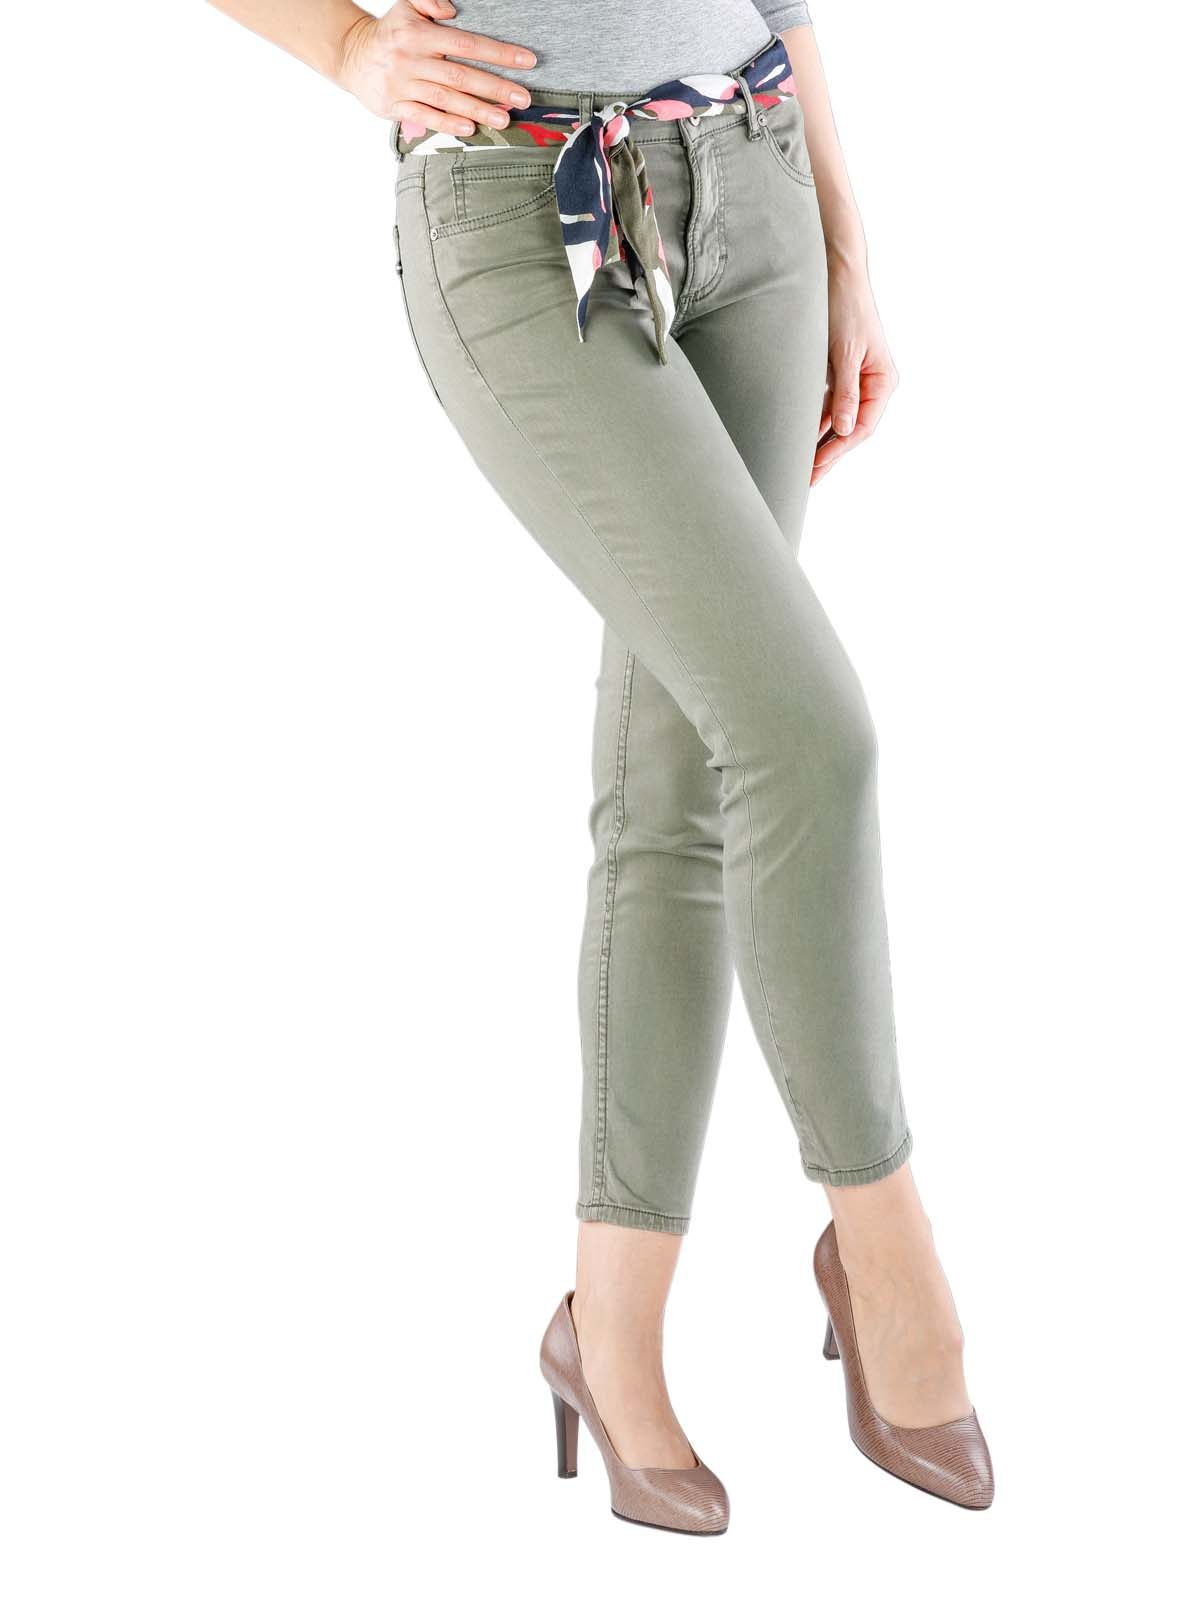 Marc O'Polo Lulea Slim Jeans burnt olive W26L32